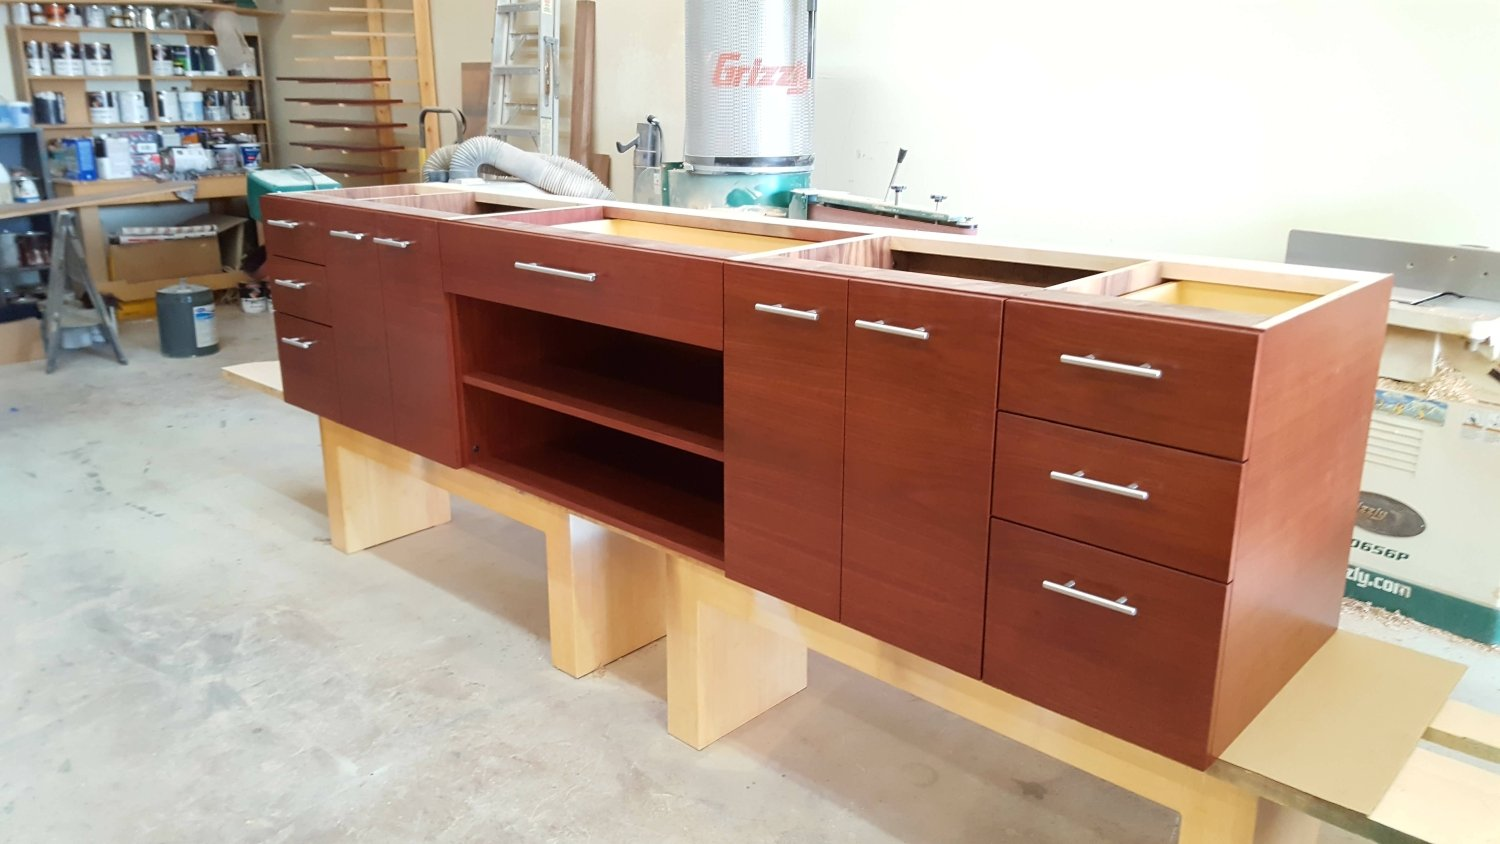 Woodworking Home Furniture & Living Room style photo custom & crafted by Belak woodworking llc in Shawnee Mission, Kansas — Furniture Built in Closet units & Skilled Industrial Laborer in Carpentry Kansas City, US